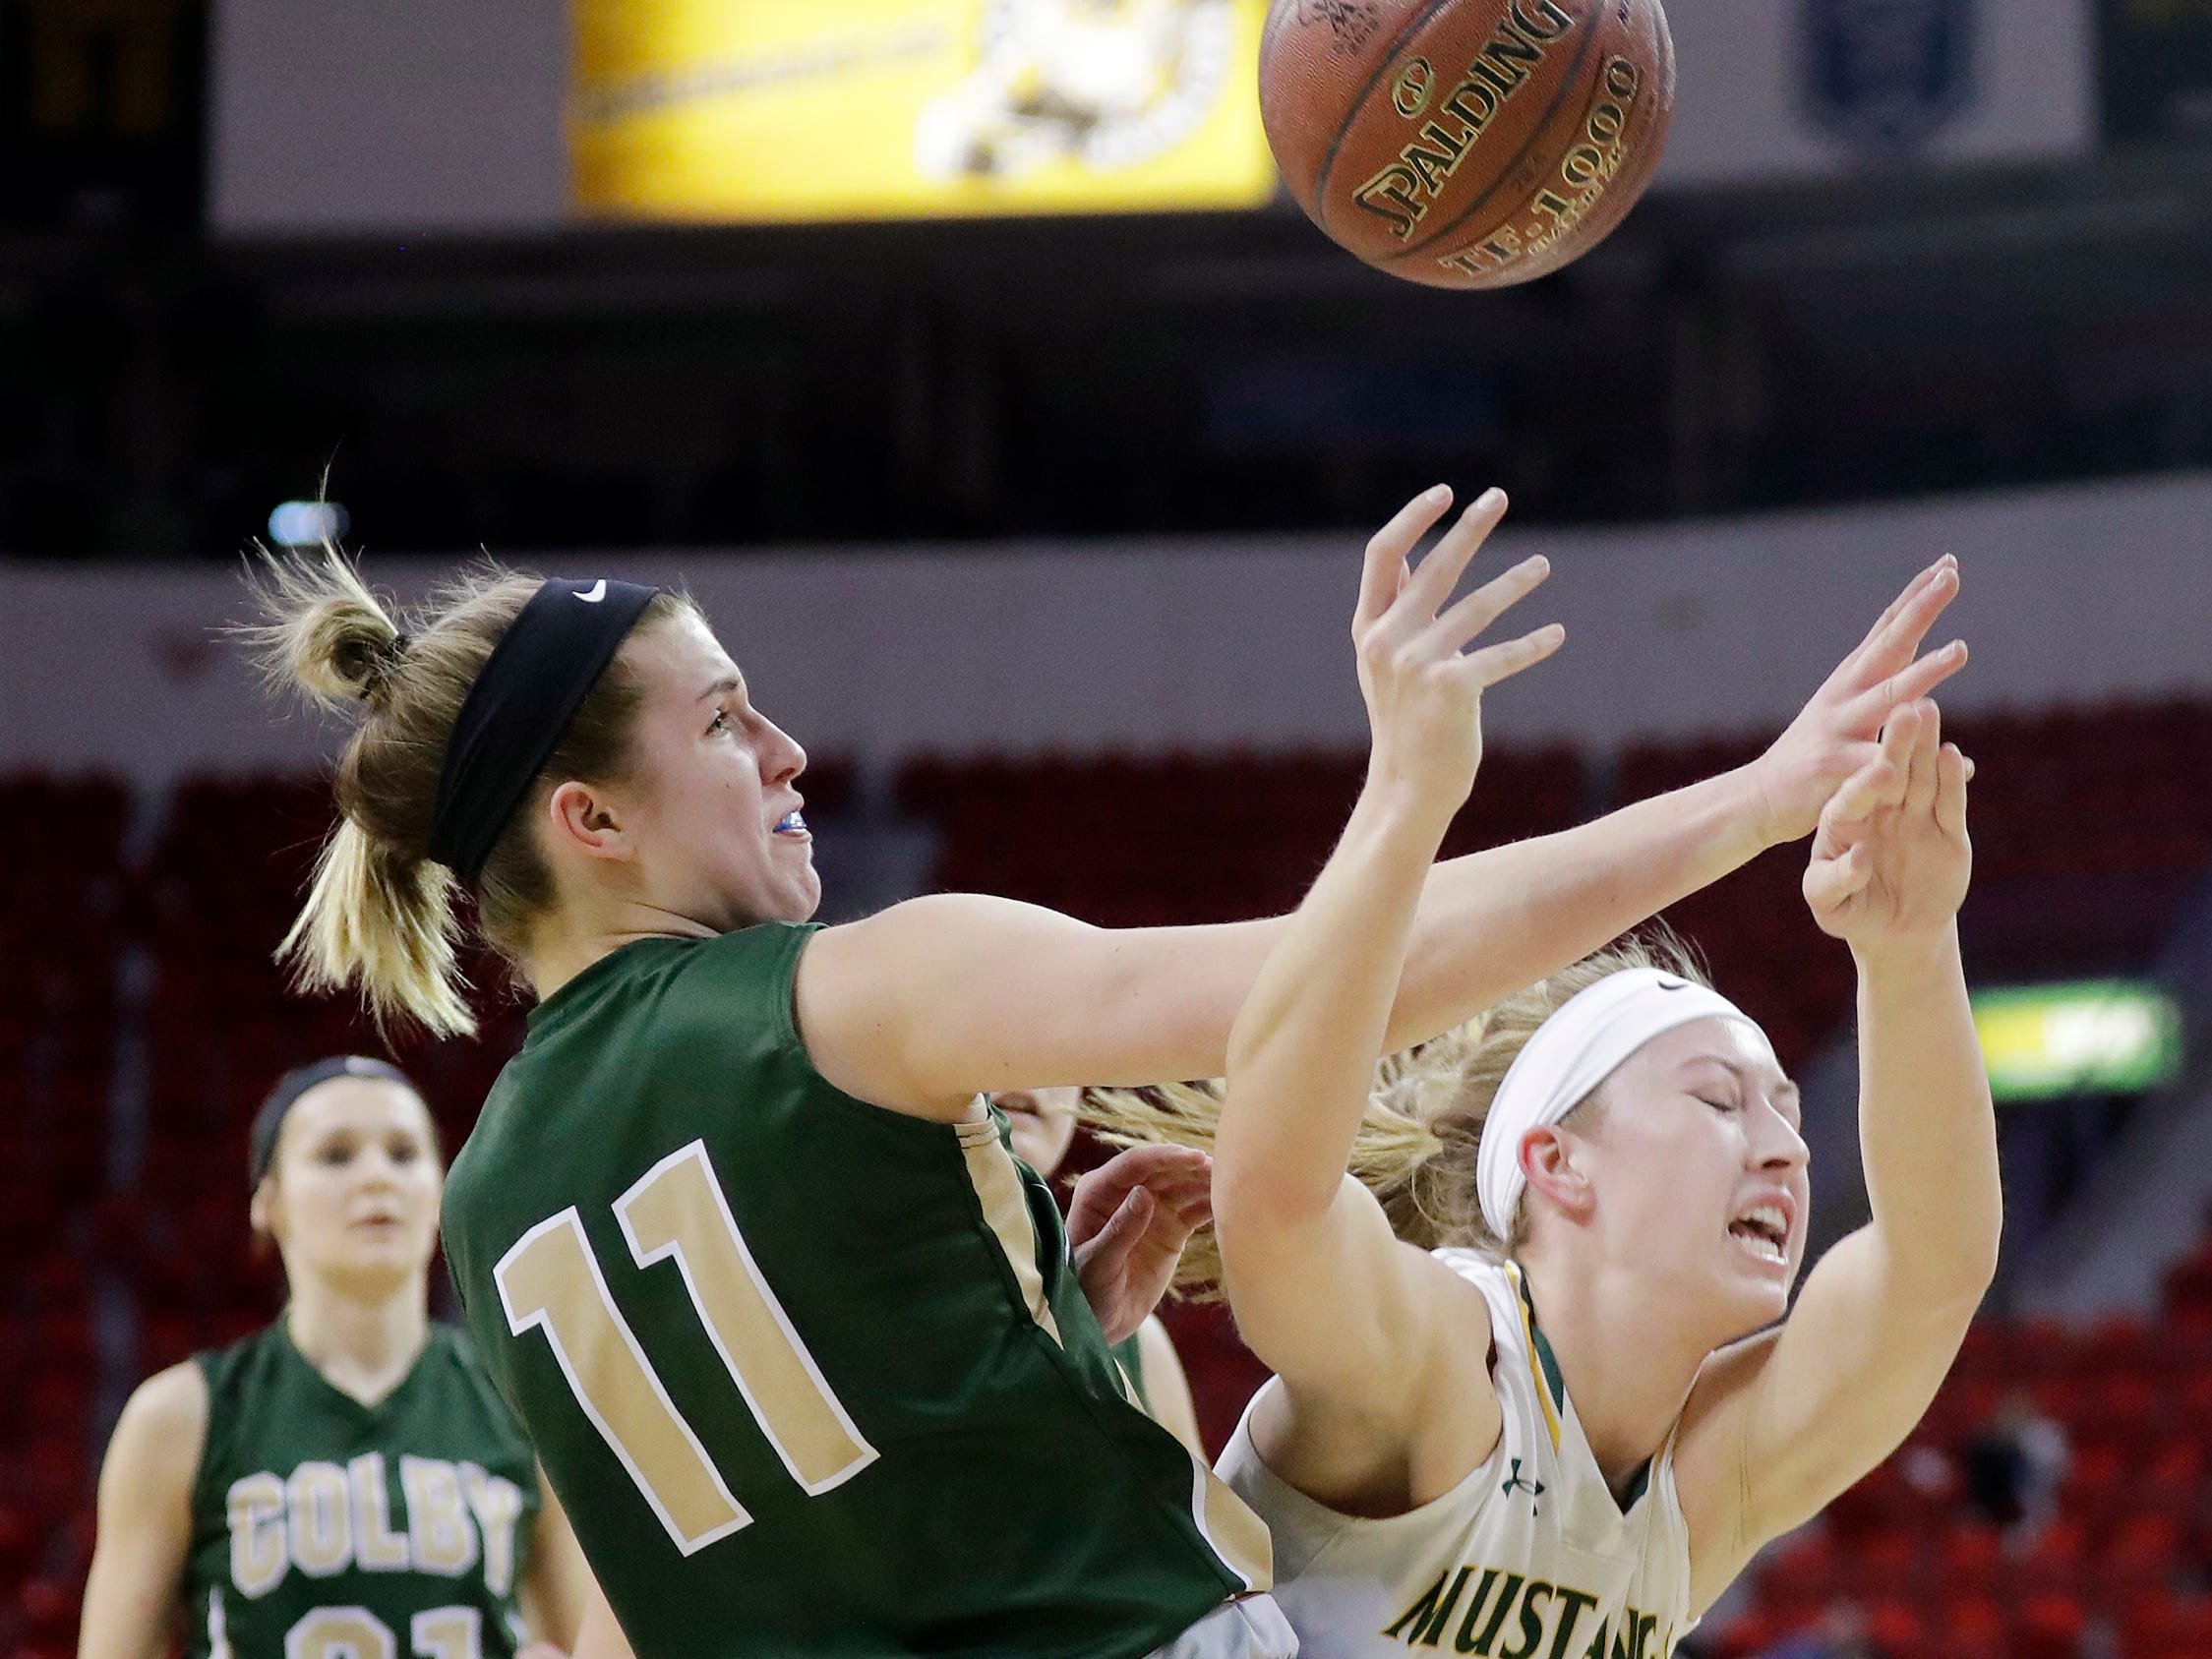 Melrose-Mindoro's Emily Herzberg (40) gets fouled by Colby's Hailey Voelker (11) in a Division 3 semifinal at the WIAA state girls basketball tournament at the Resch Center on Thursday, March 7, 2019, in Ashwaubenon, Wis.